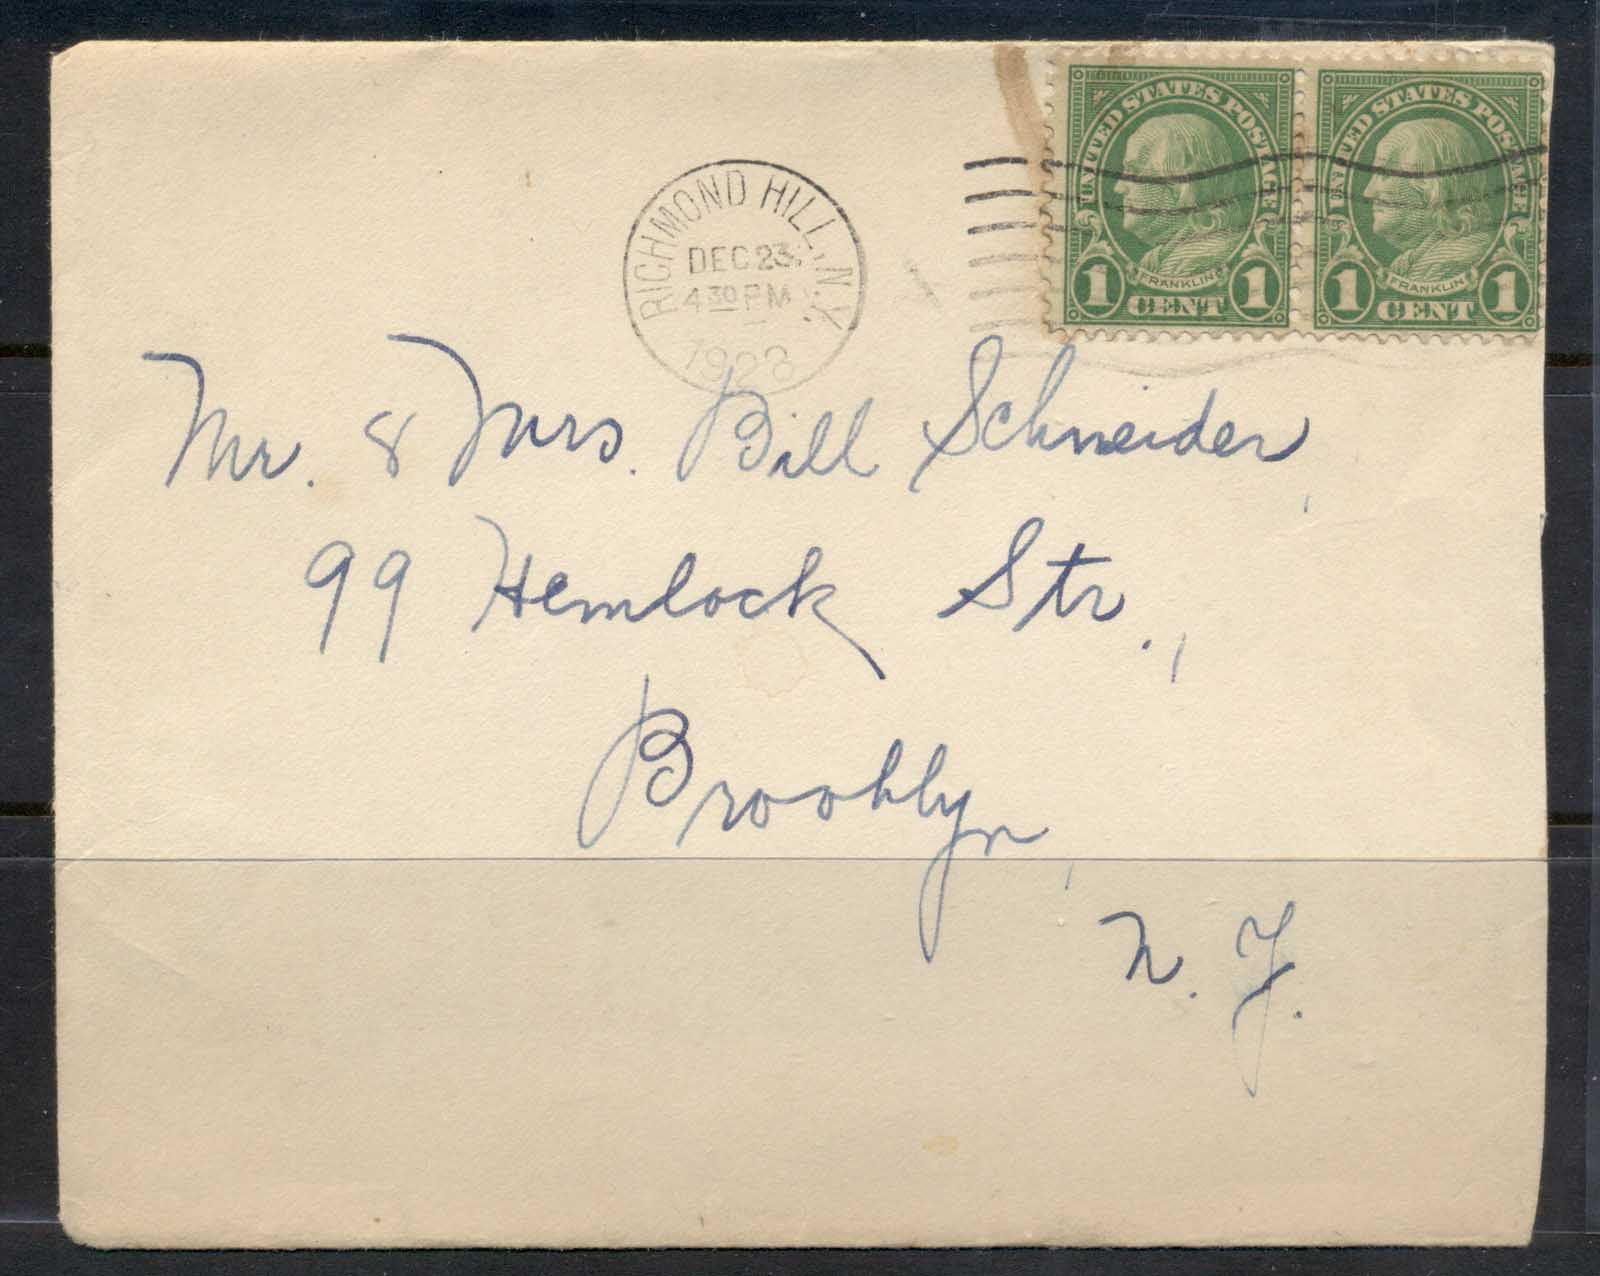 USA 1922-38 Fourth Bureau Franklin 2x1c Richmond Hill cover